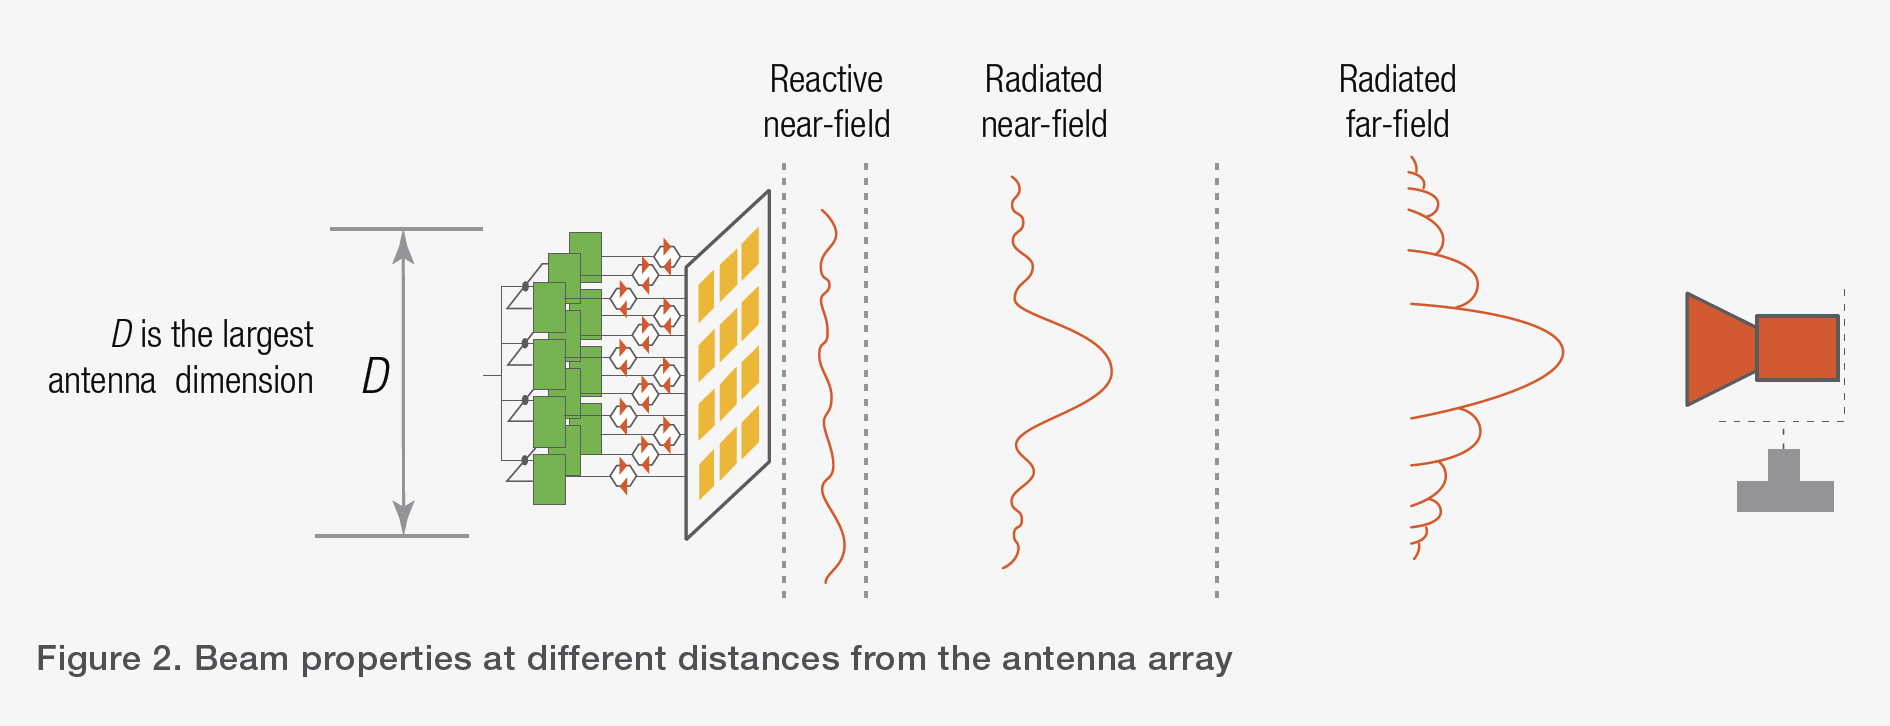 Figure 2. Beam properties at different distances from the antenna array